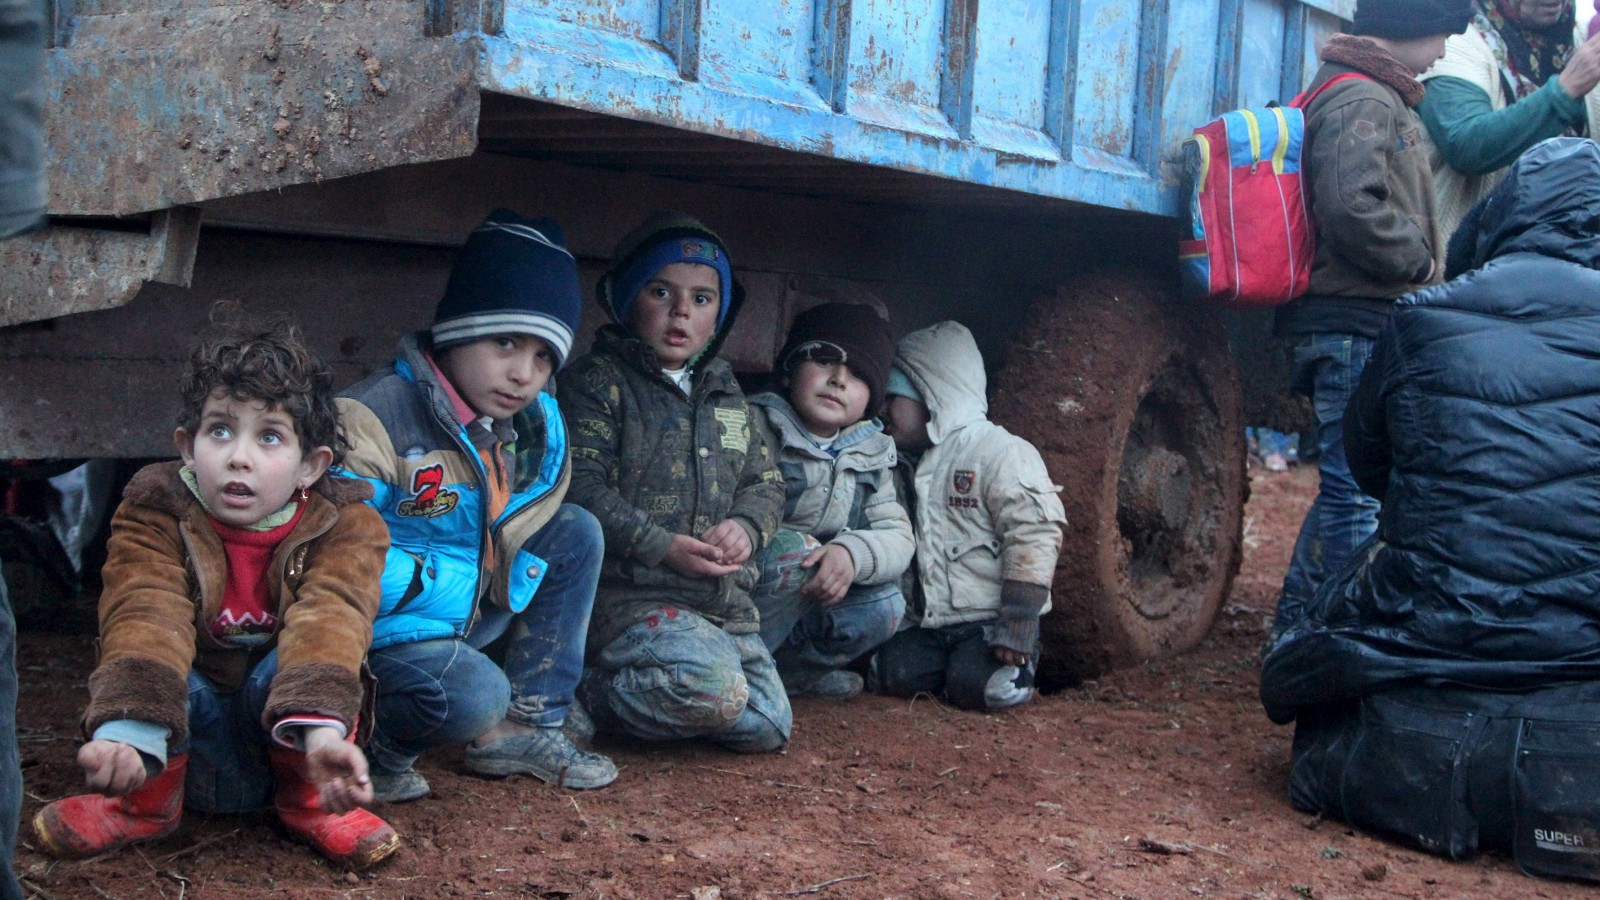 Displaced children, who fled with their families the violence from Islamic State-controlled area of al-Bab, wait as they are stuck in the Syrian village of Akda to cross into Turkey, January 23, 2016. Turkey's border guards prevented the displaced people from approaching their country's border, activists said. REUTERS/Abdalrhman Ismail       TPX IMAGES OF THE DAY      - RTX23Q1Q